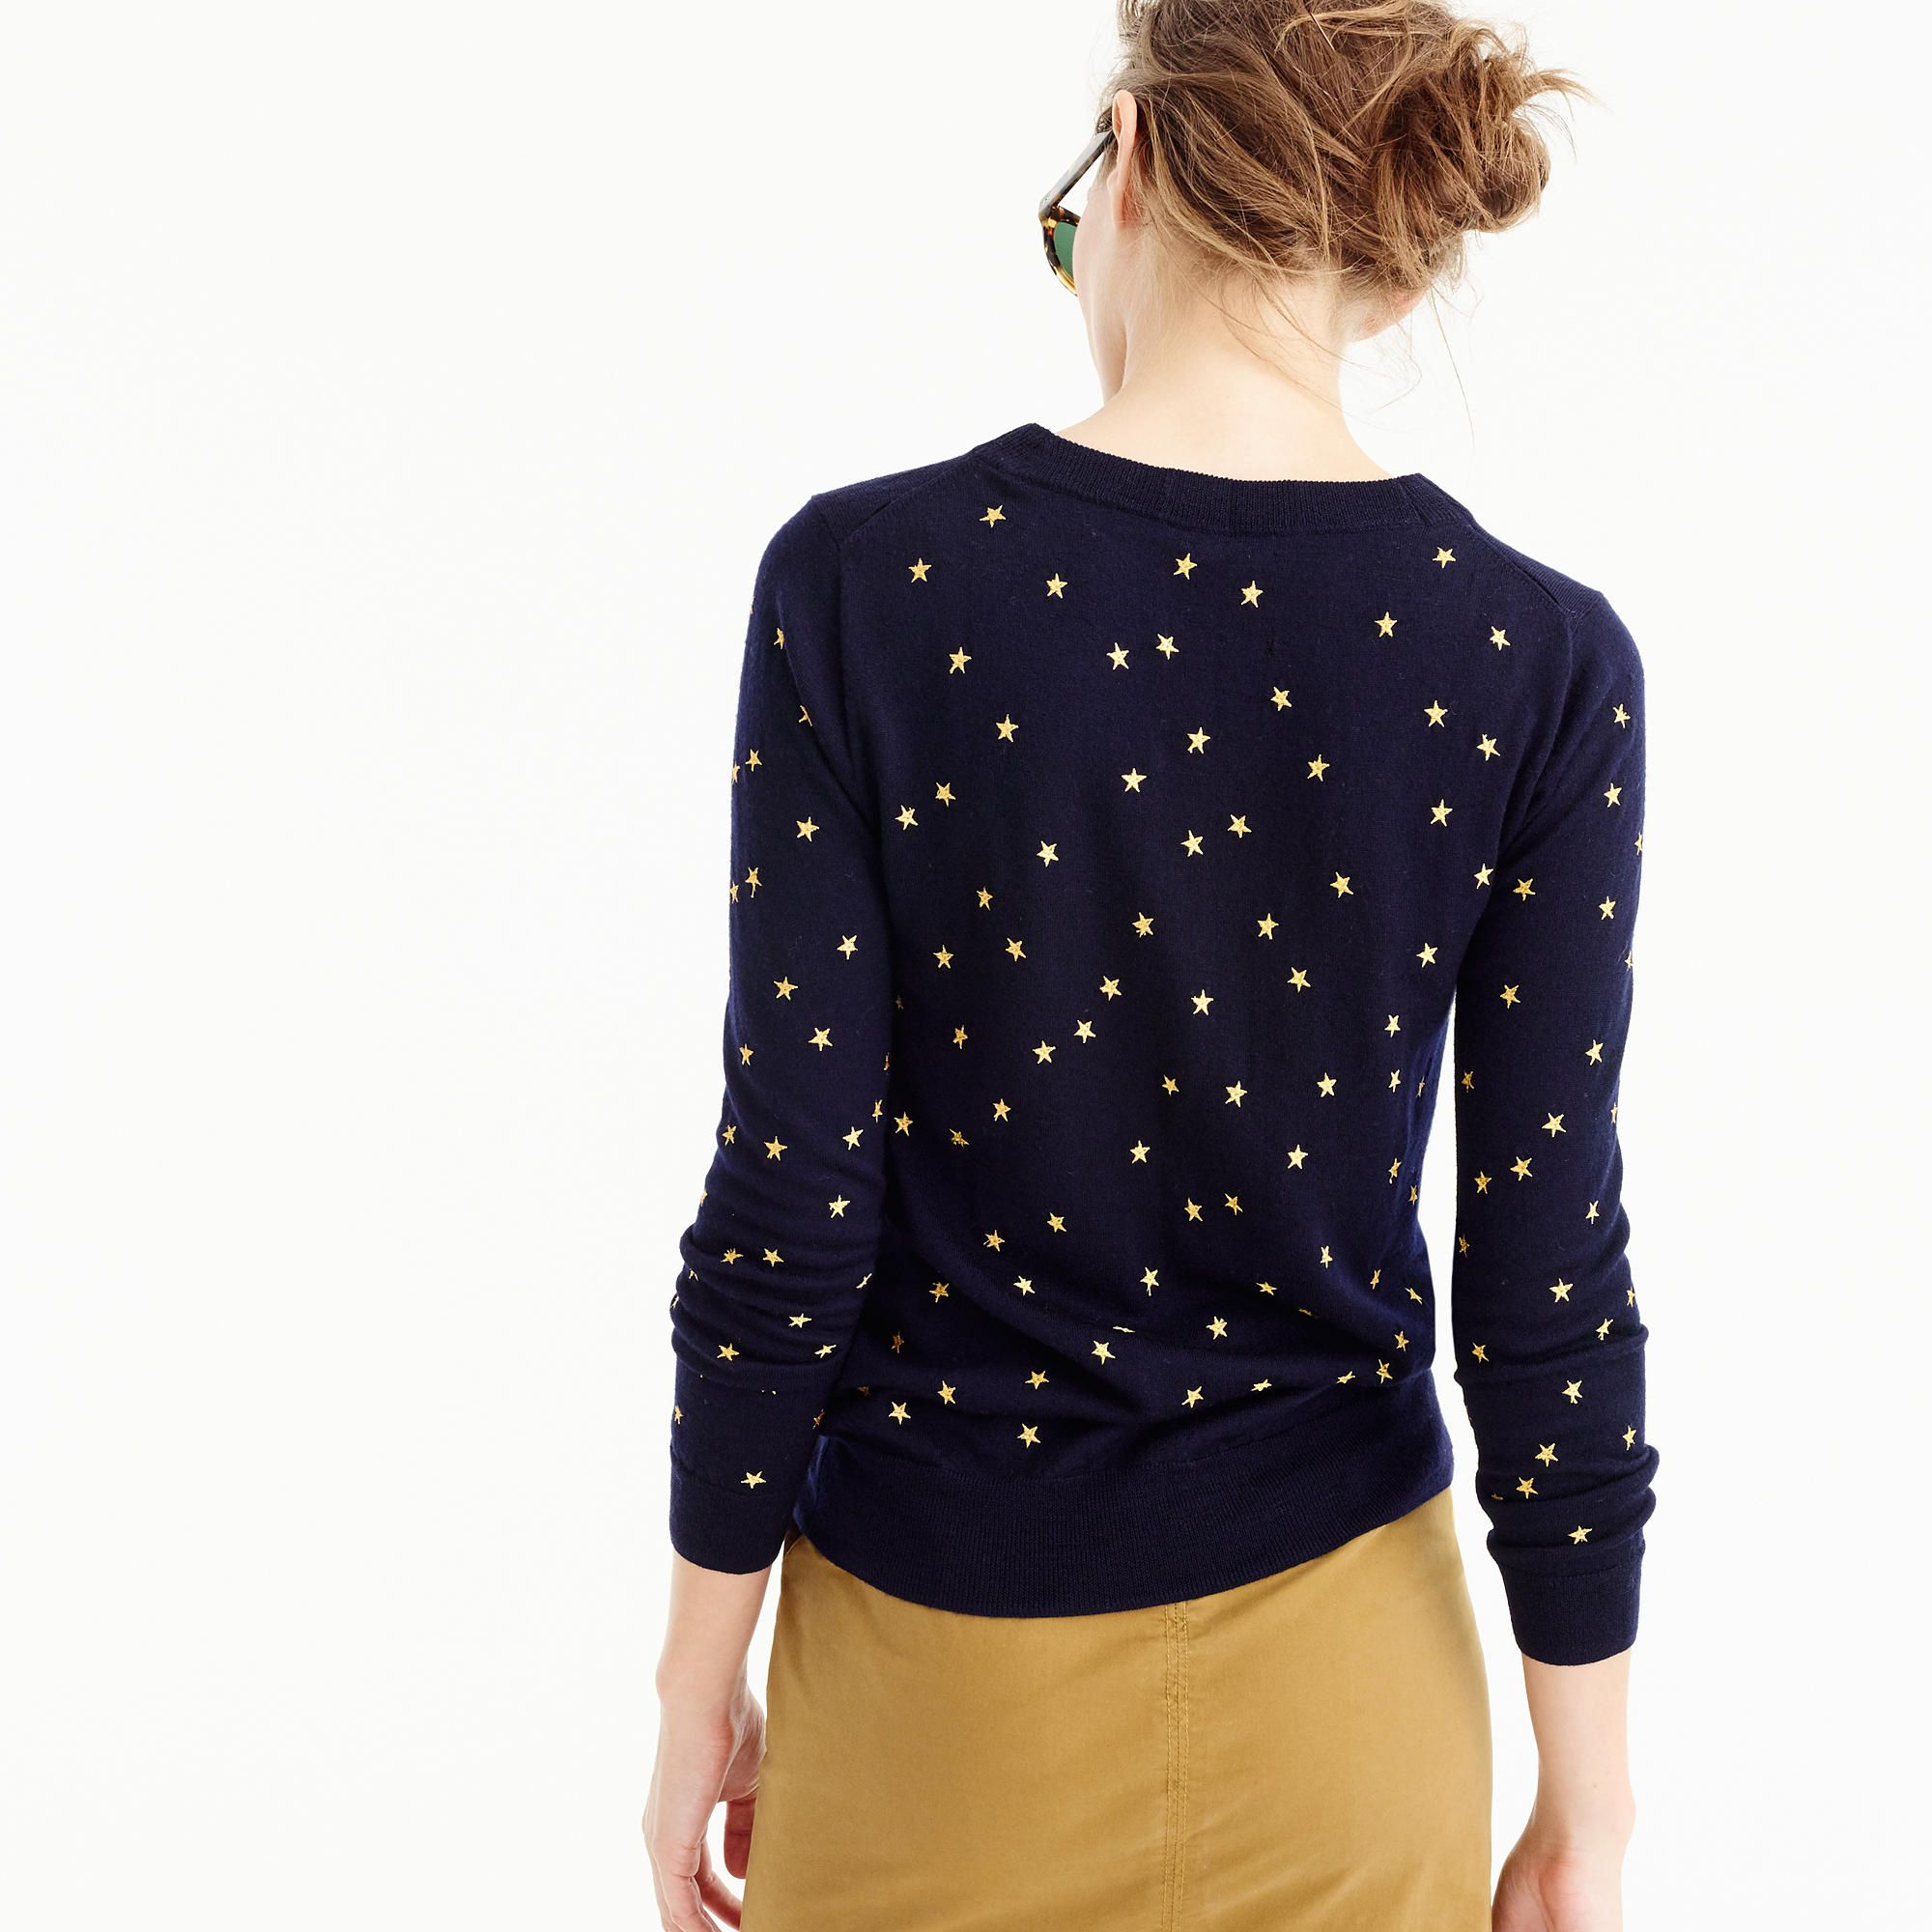 Tippi sweater in embroidered stars | wardrobe | Pinterest ...